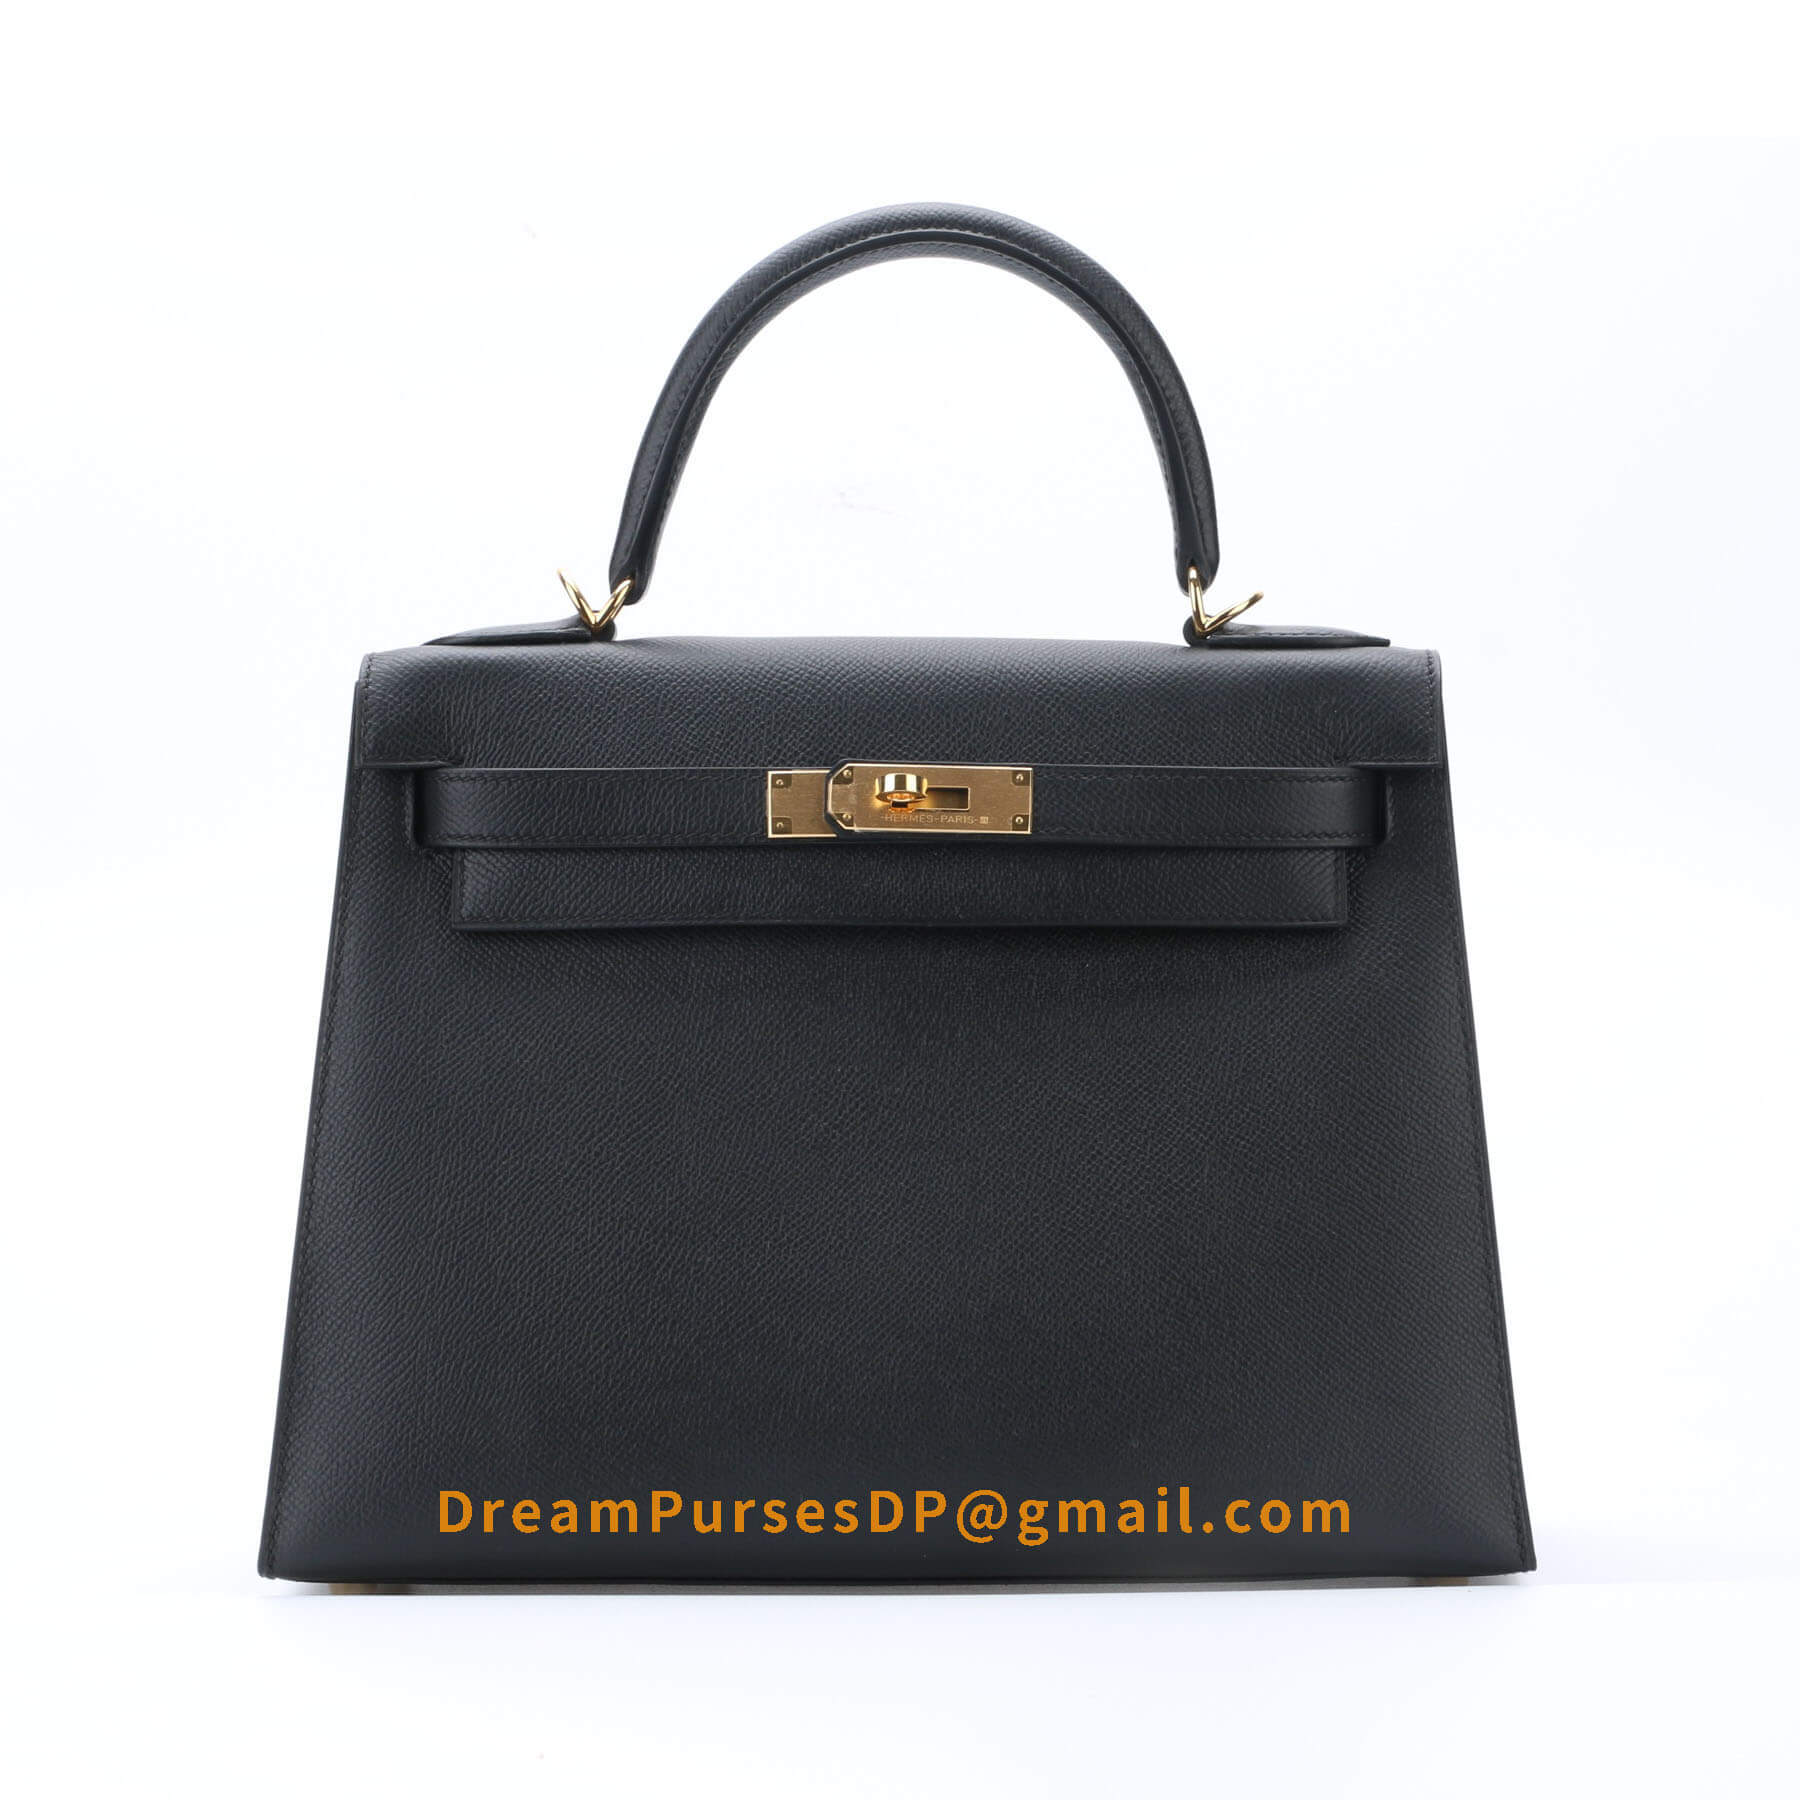 Hermes Kelly 28 Black Epsom Leather GHW